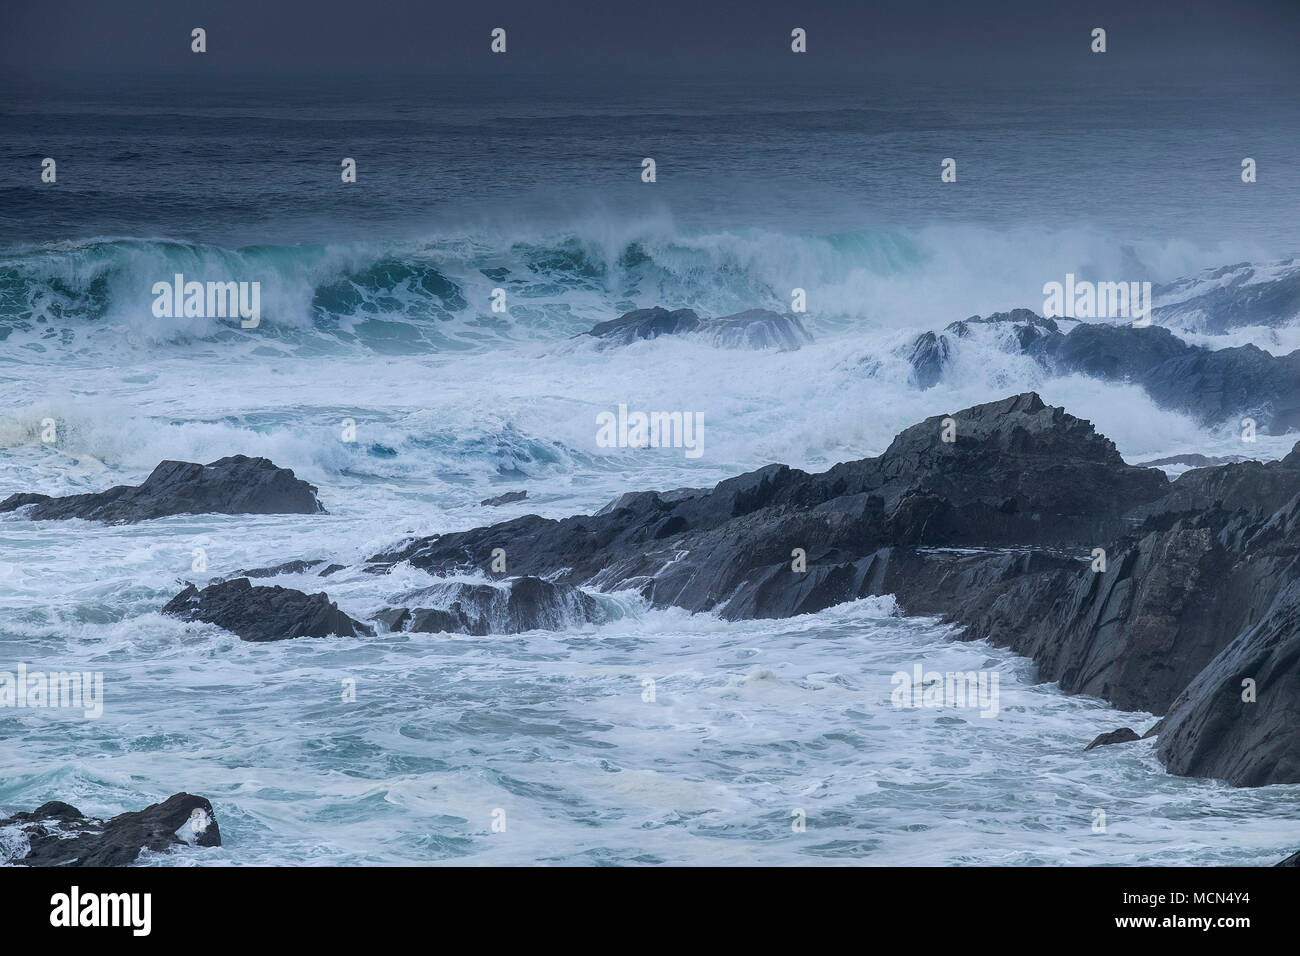 UK weather - Stormy sea conditions at Little Fistral in Newquay Cornwall. - Stock Image